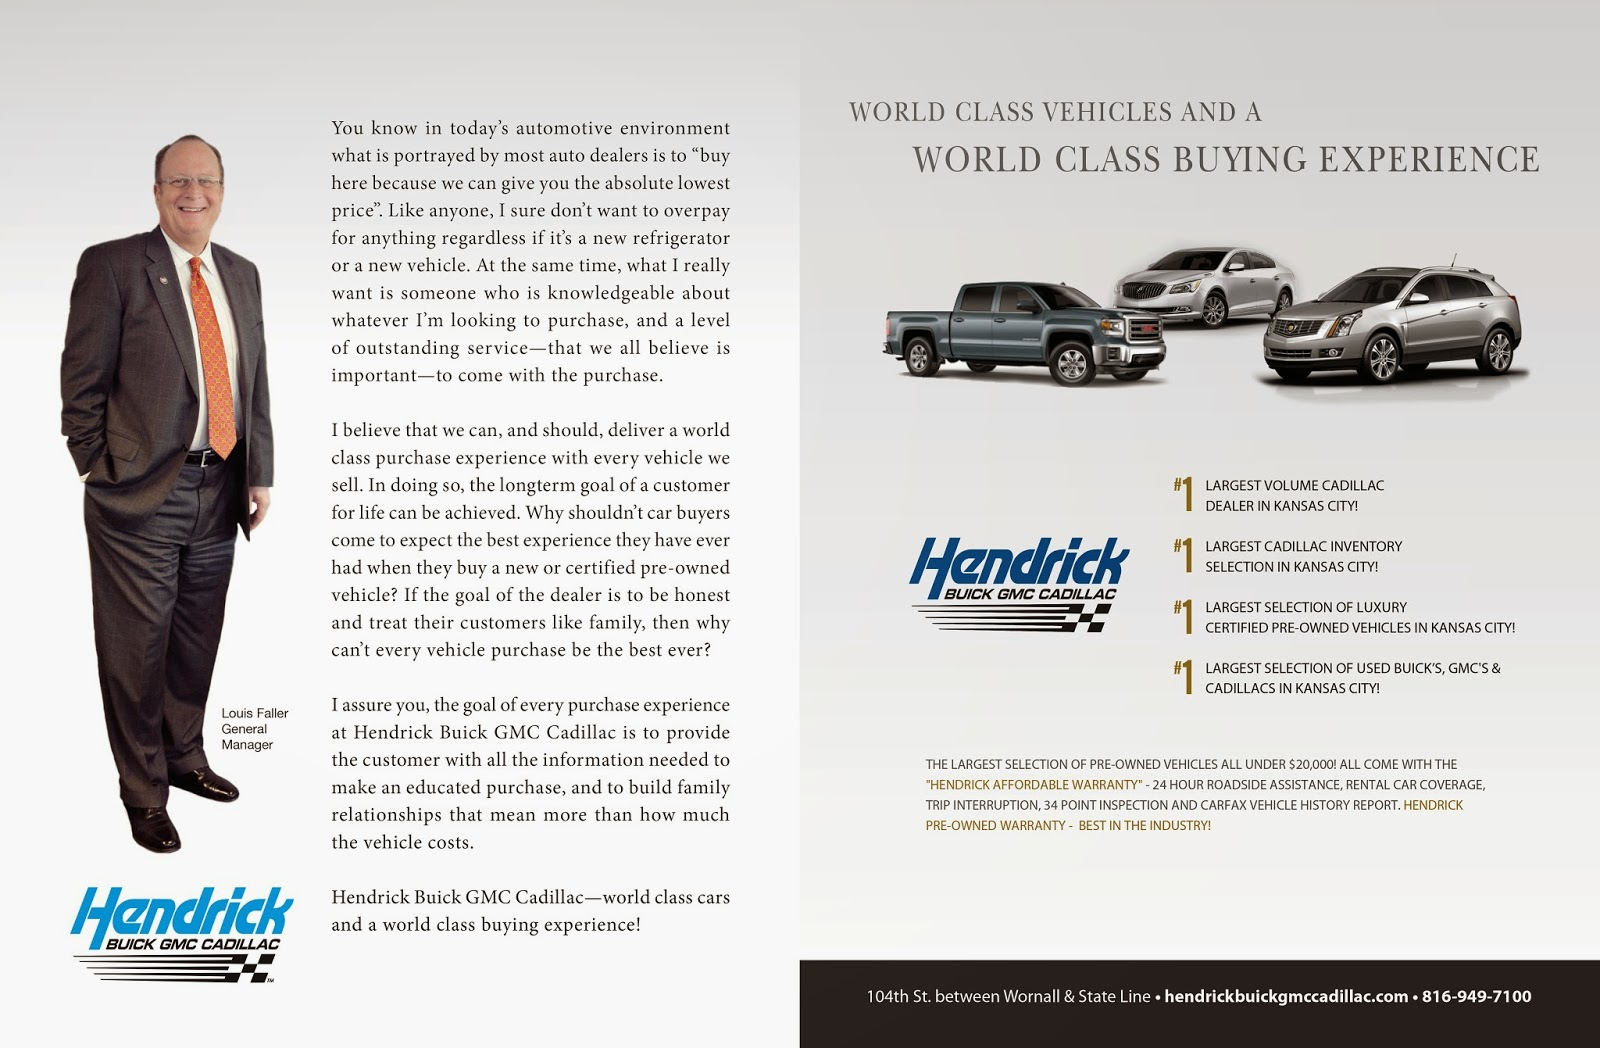 hendrick buick gmc cadillac world clvehicles and a world cl. Cars Review. Best American Auto & Cars Review